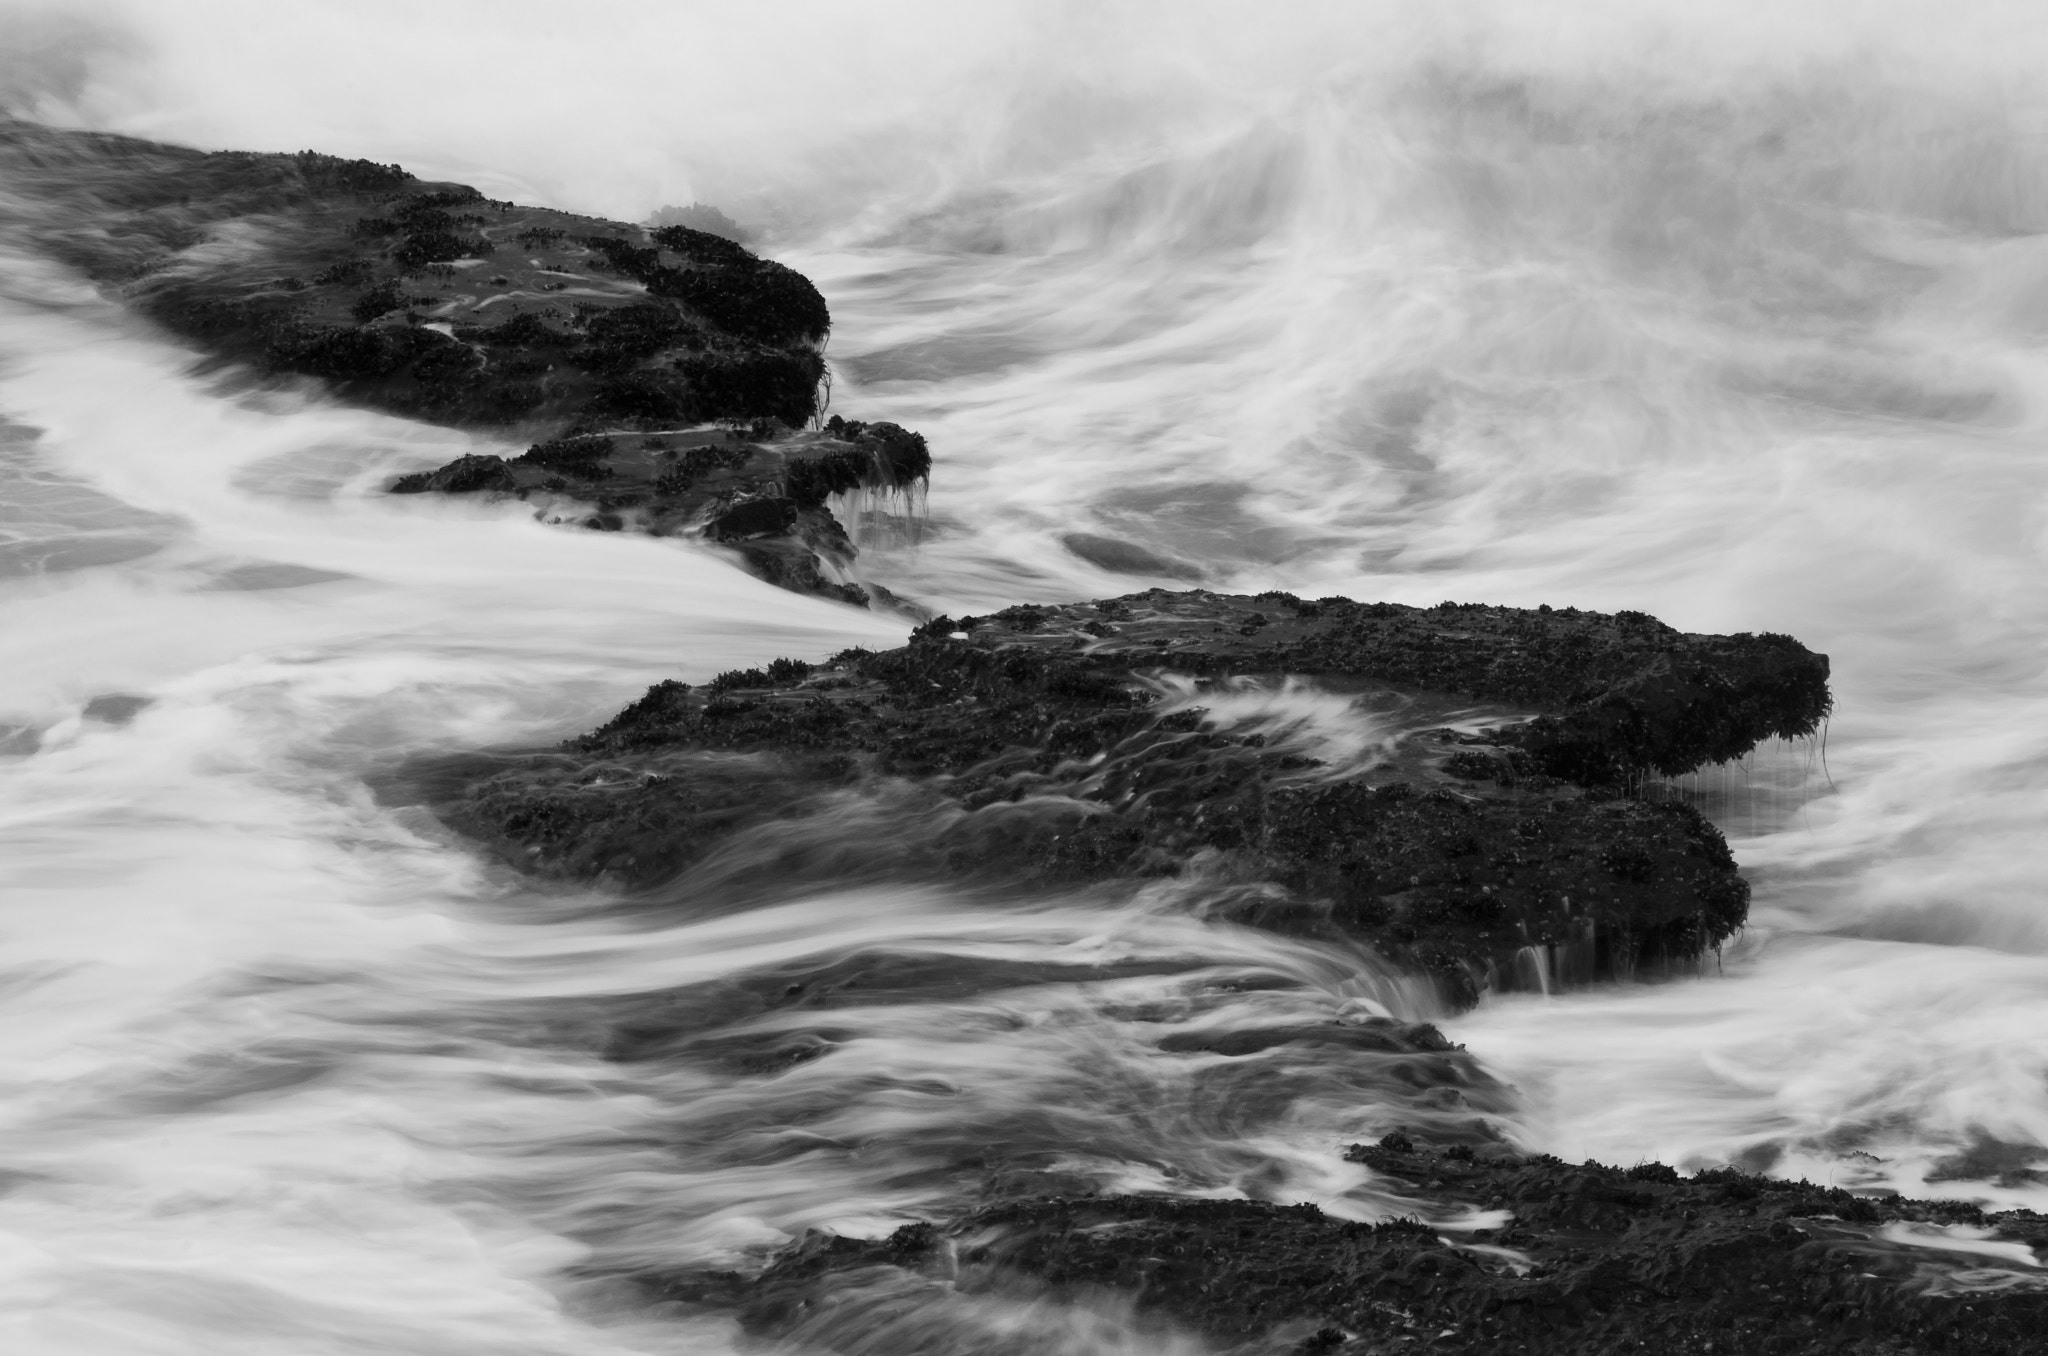 Photograph Tide #8 by Darrin Snyder on 500px